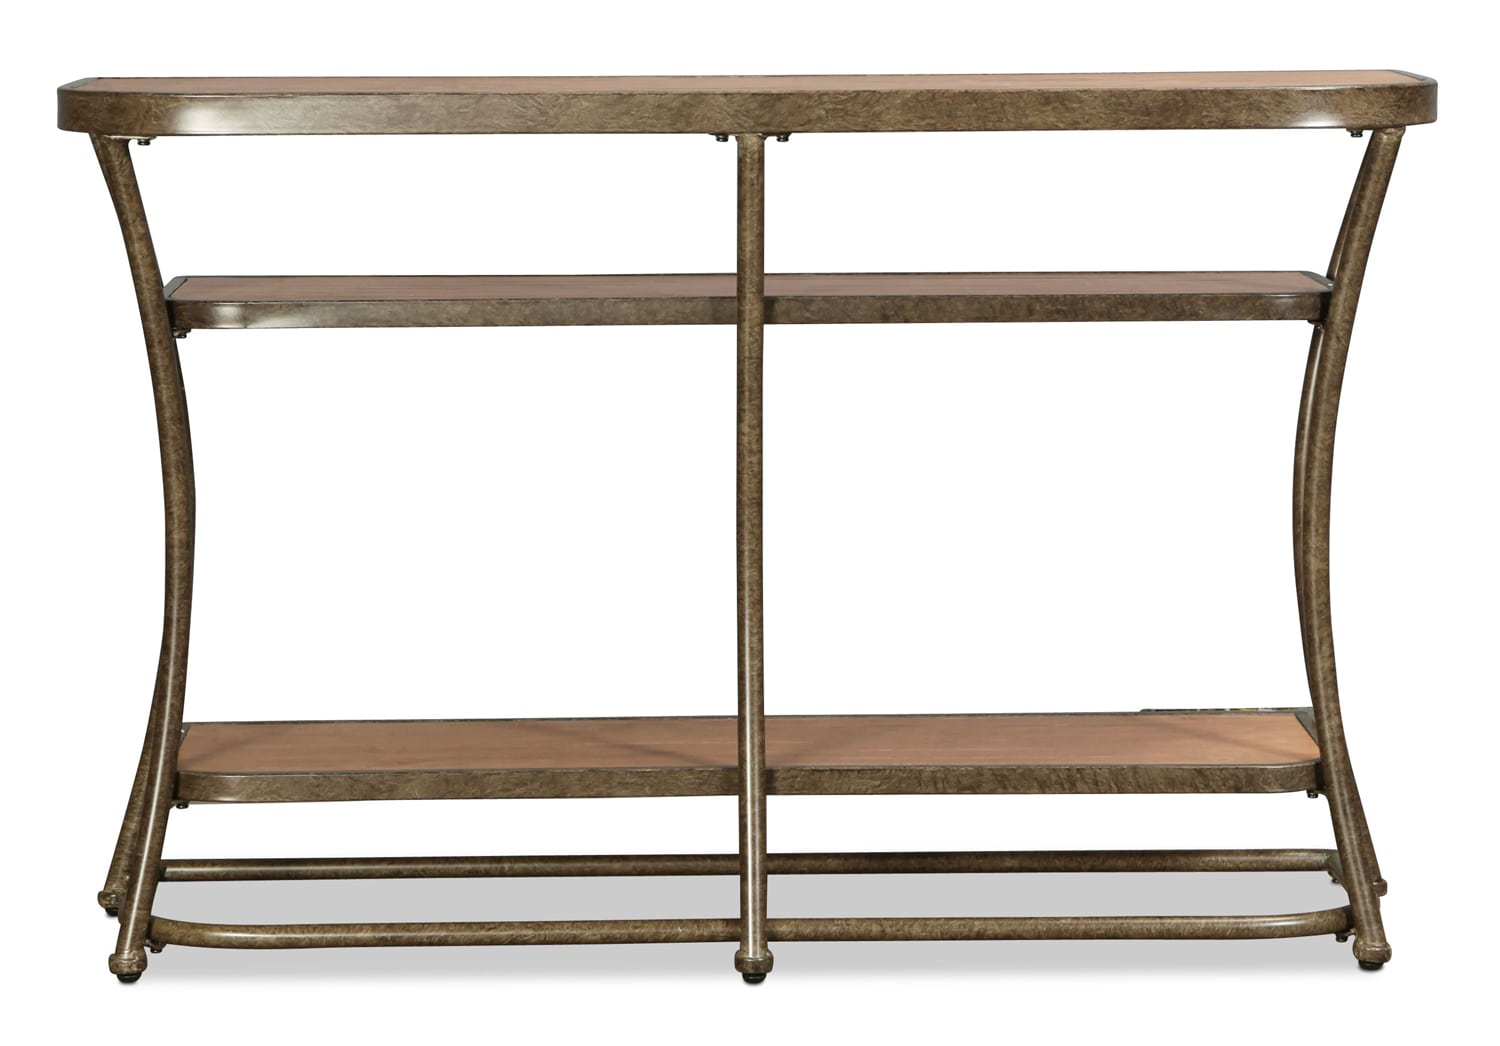 Zamora Sofa Table - Distressed Pine and Bronze